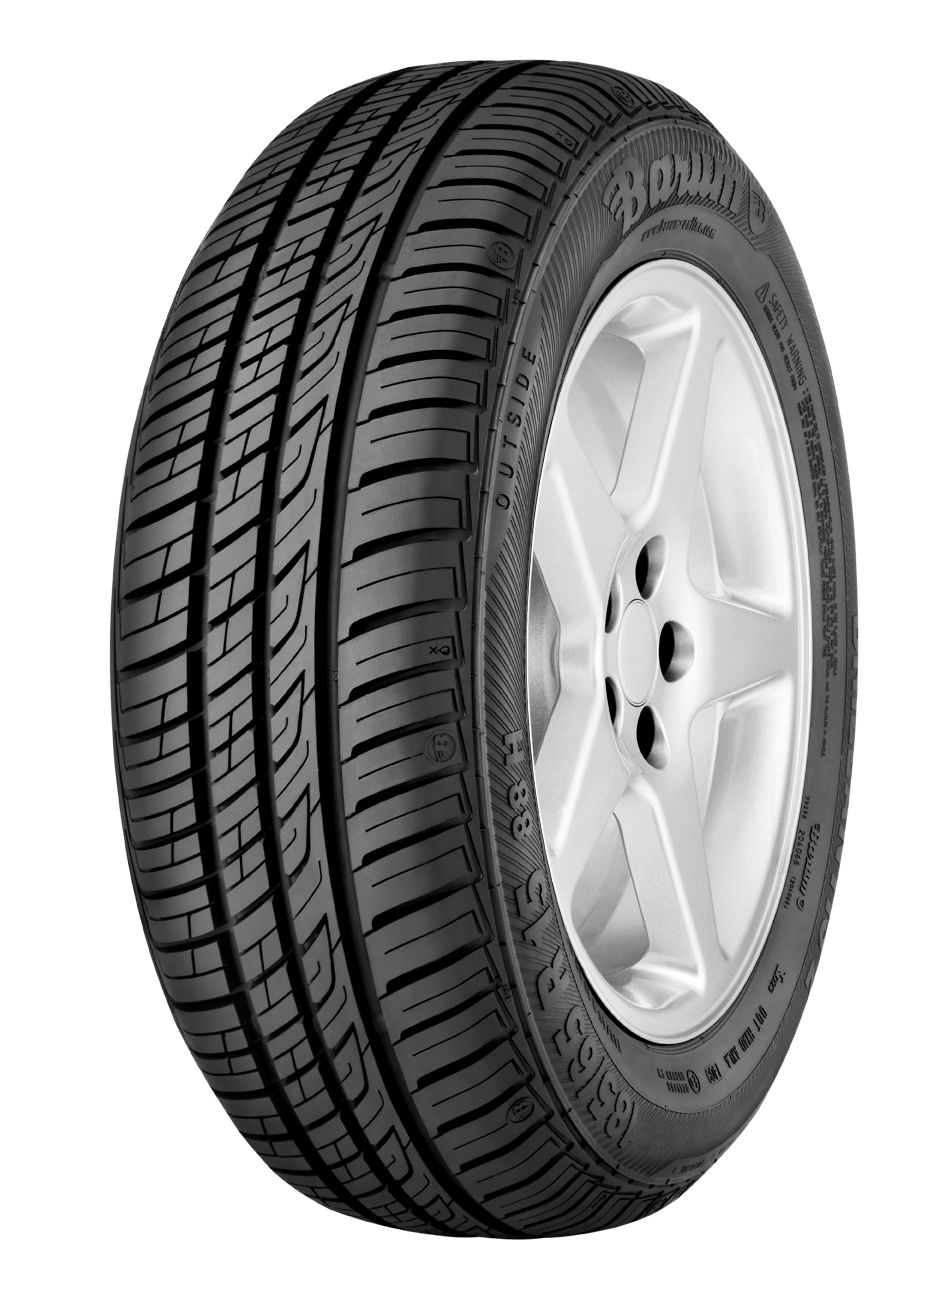 145/70 R13 Barum Brillantis 2 71 T